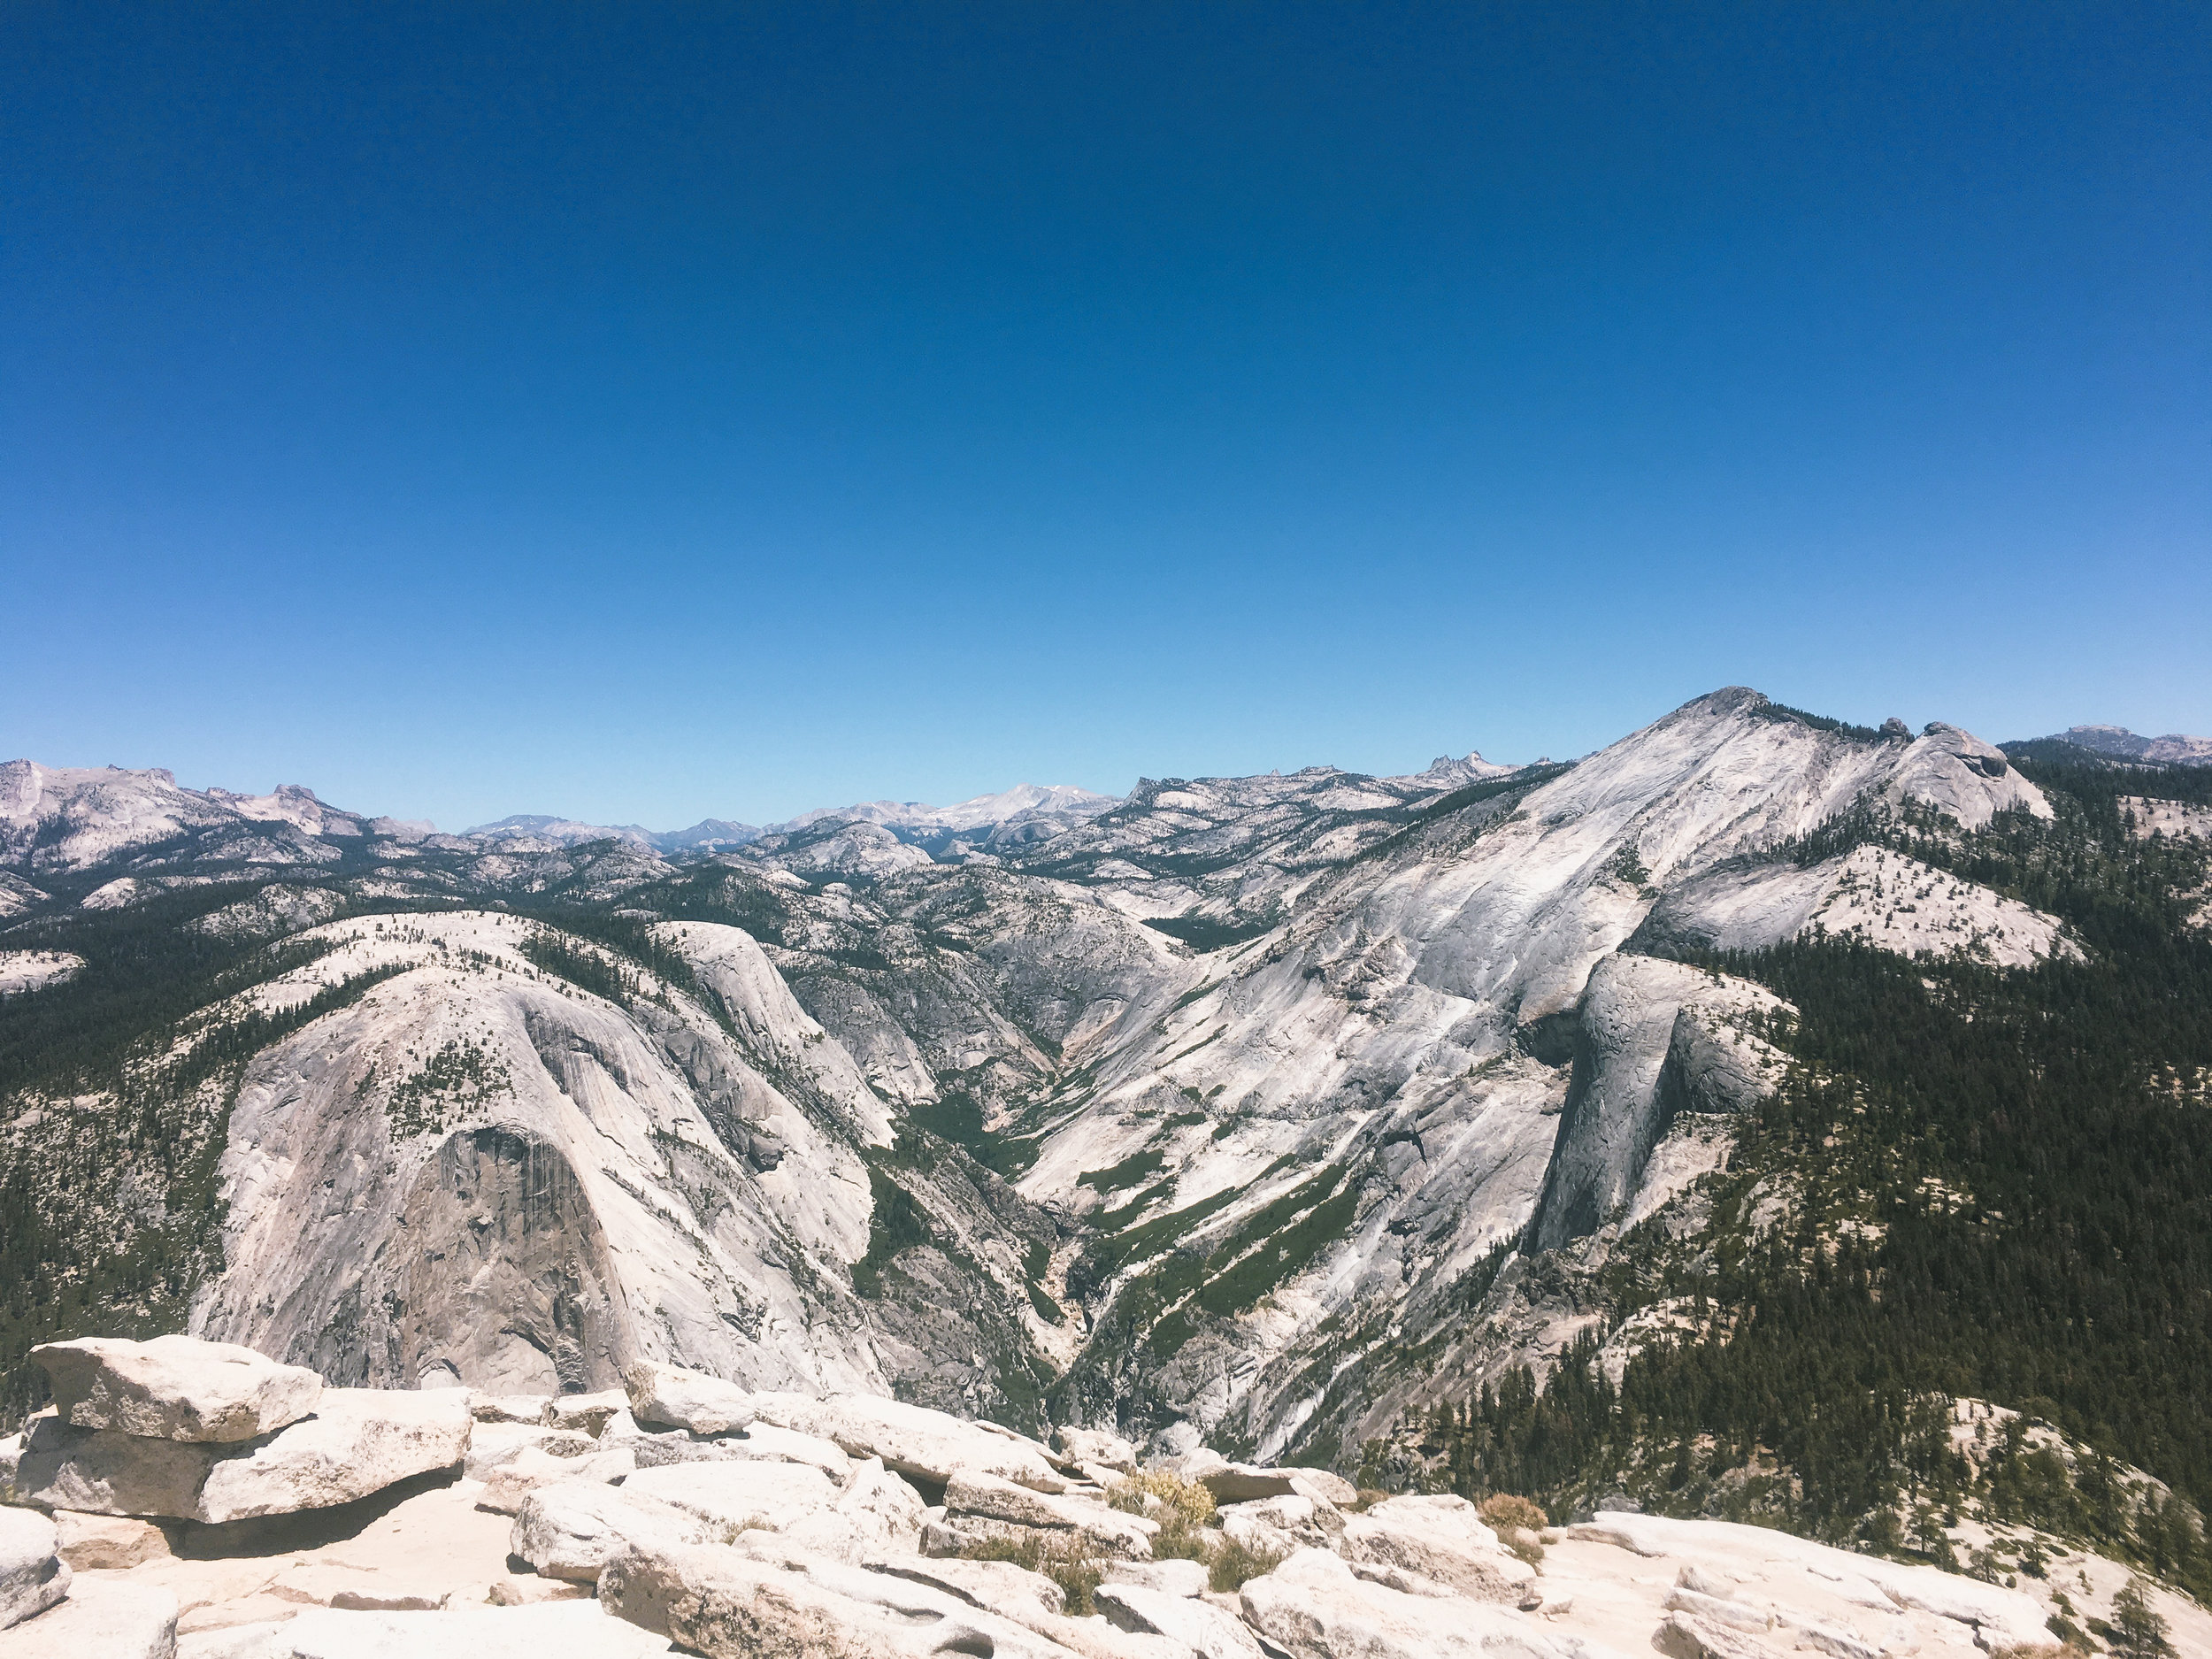 Tenaya Canyon from the top of Half Dome